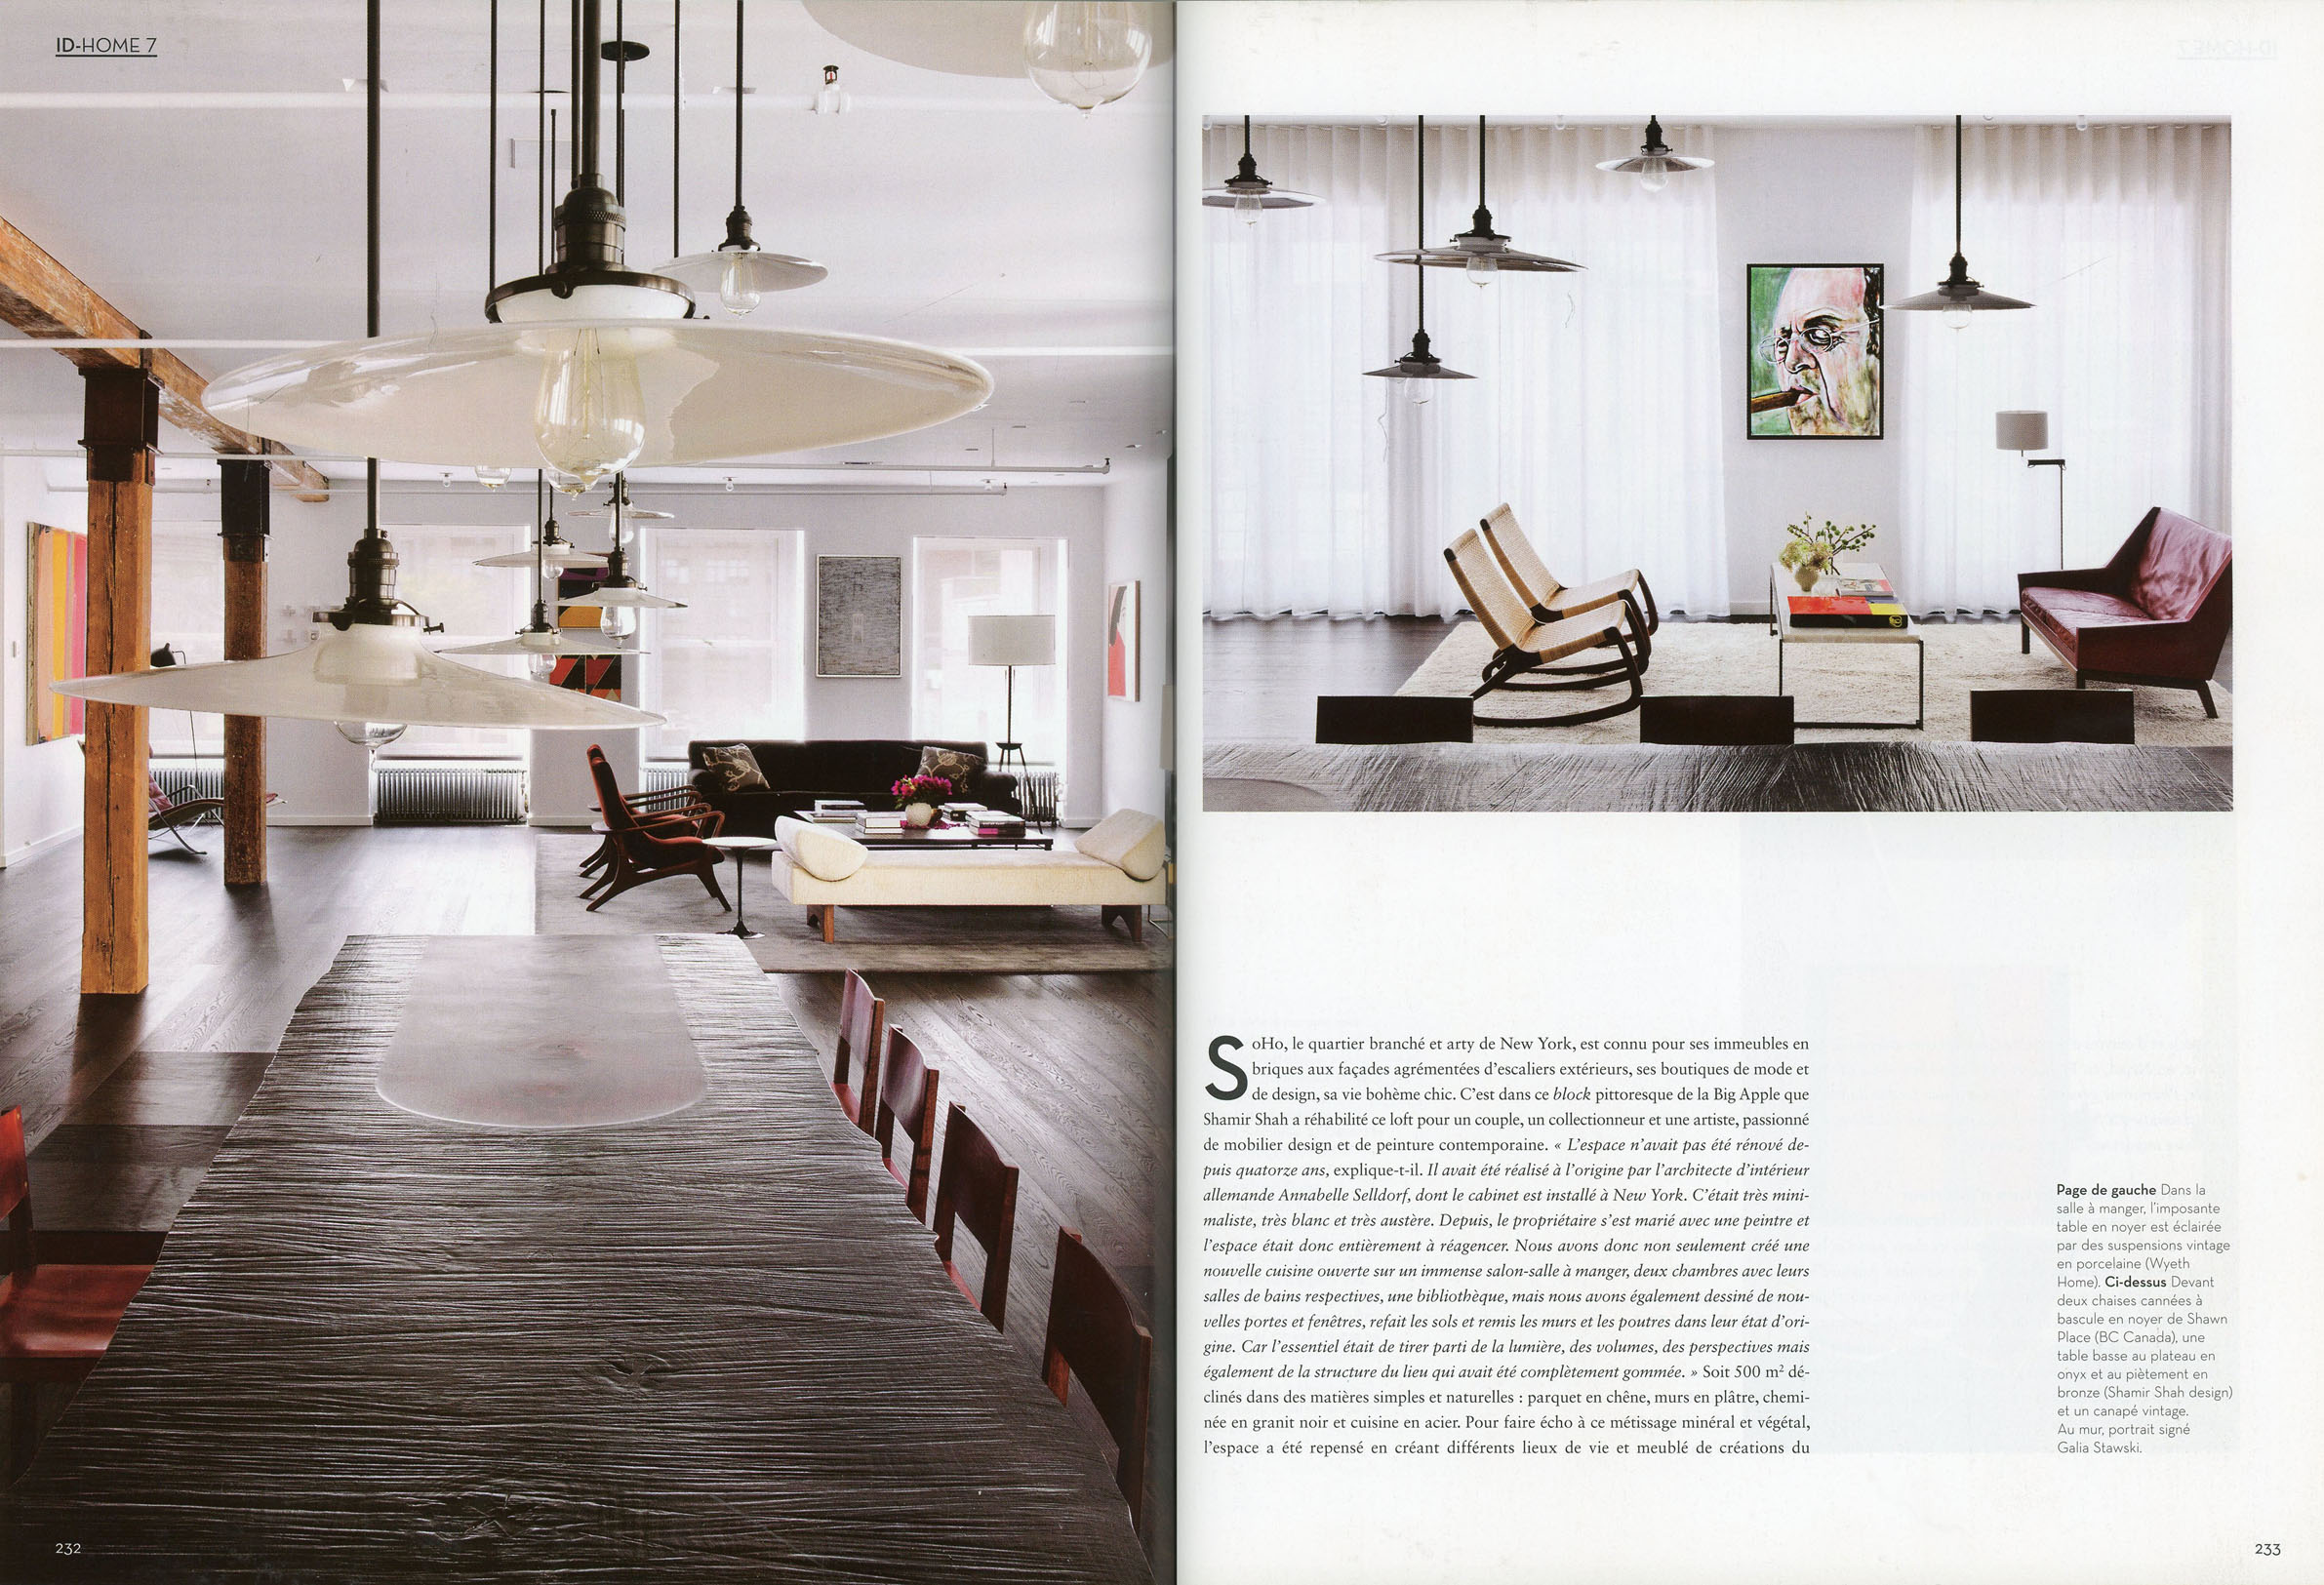 Pages from Ideat_2014-3.jpg